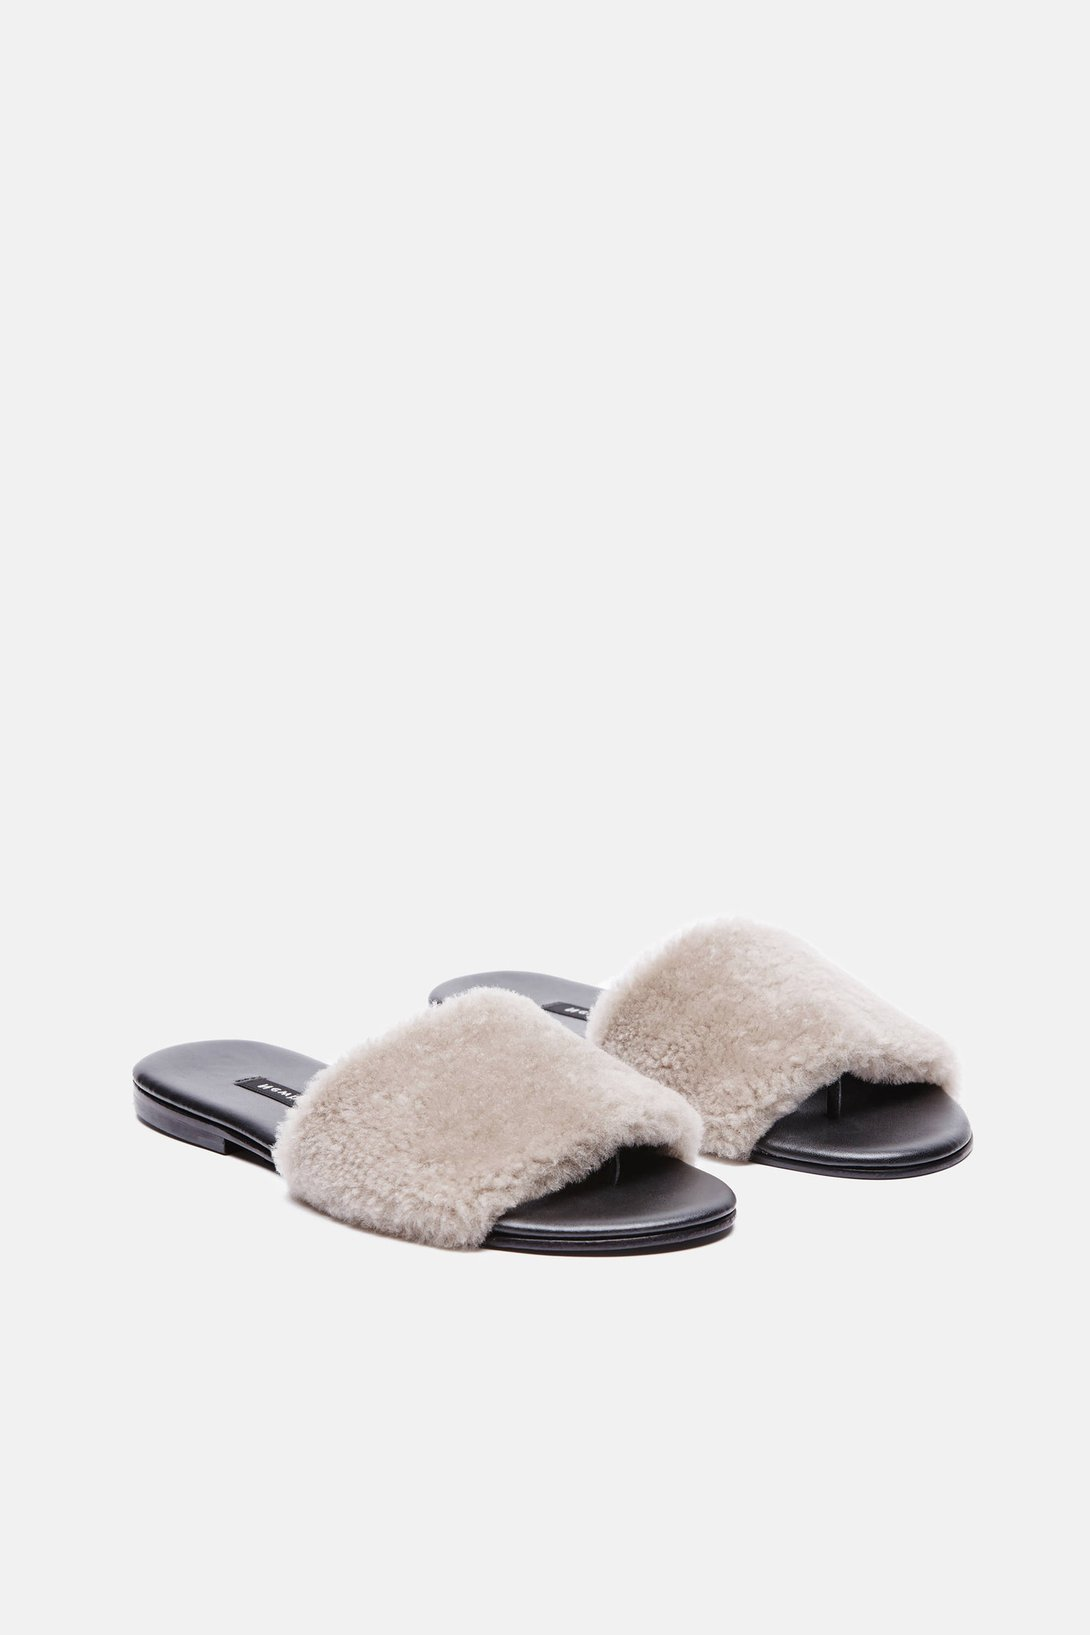 d5e4ecdbe42e Shop NewbarK Roma II Sandal in Taupe Shearling from The Best of NYC  Designer Sample Sale Women s Shoes Sample Sale